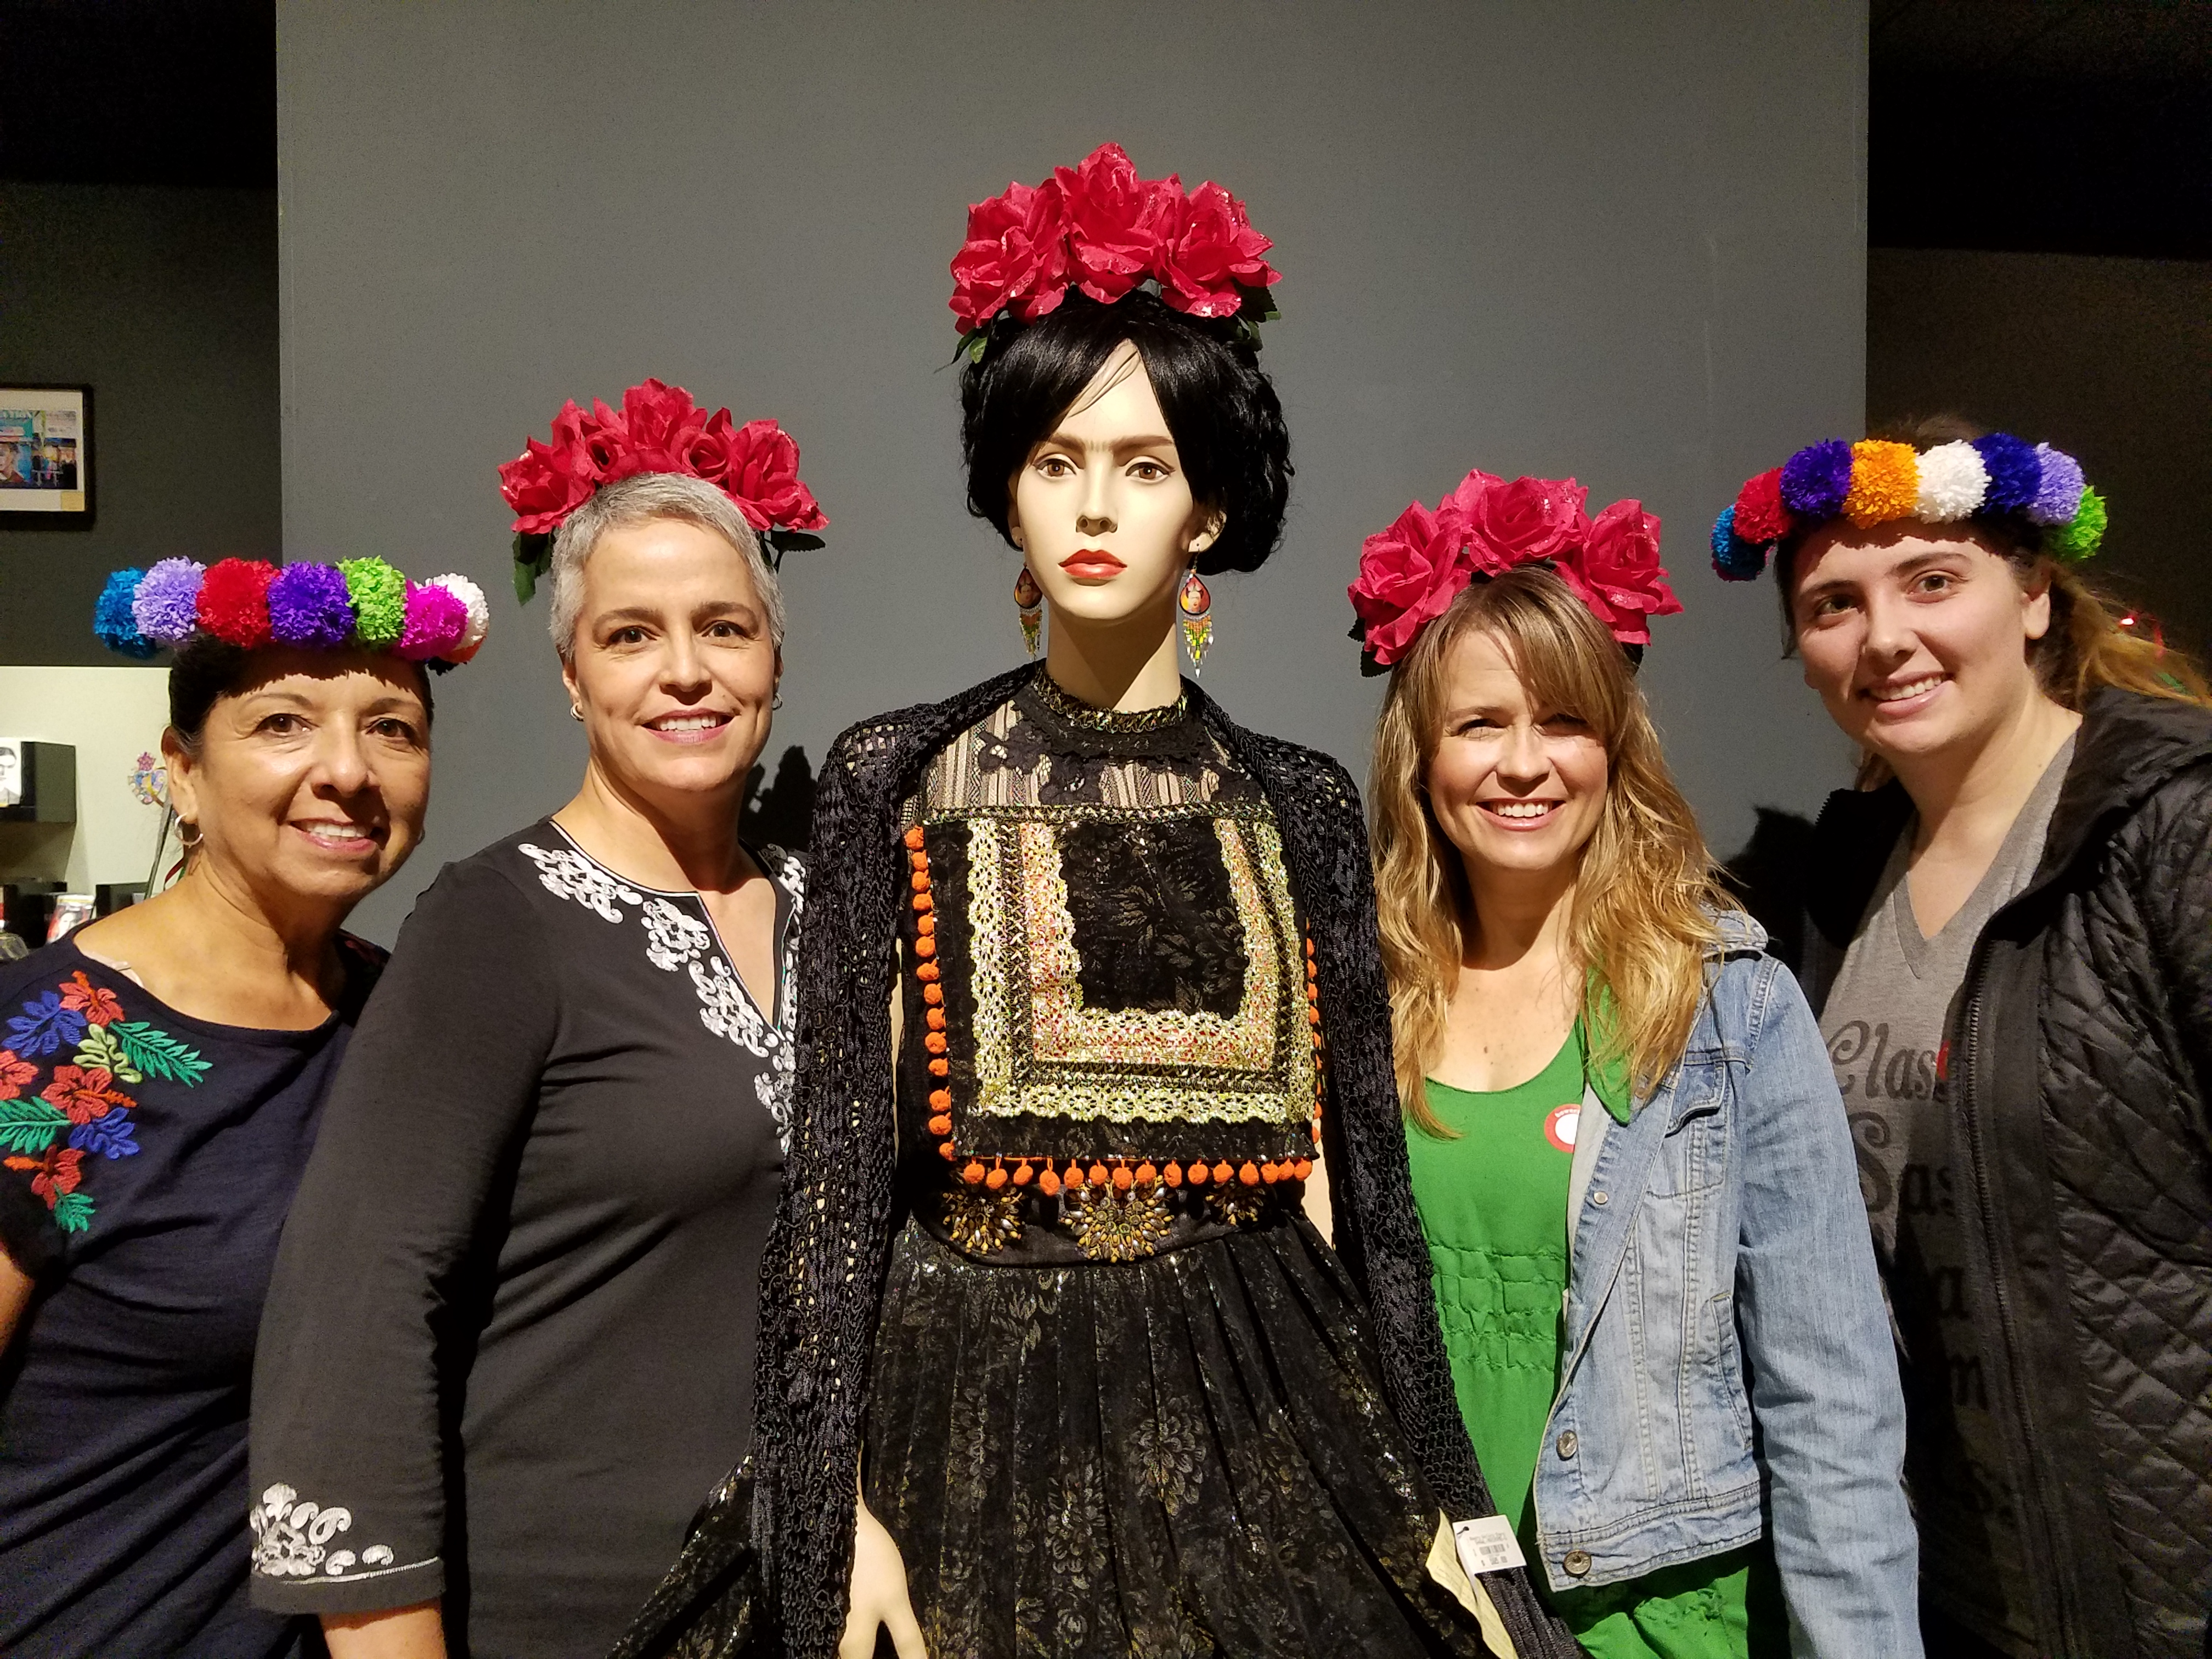 Bower's Museum - Frida Exhibit